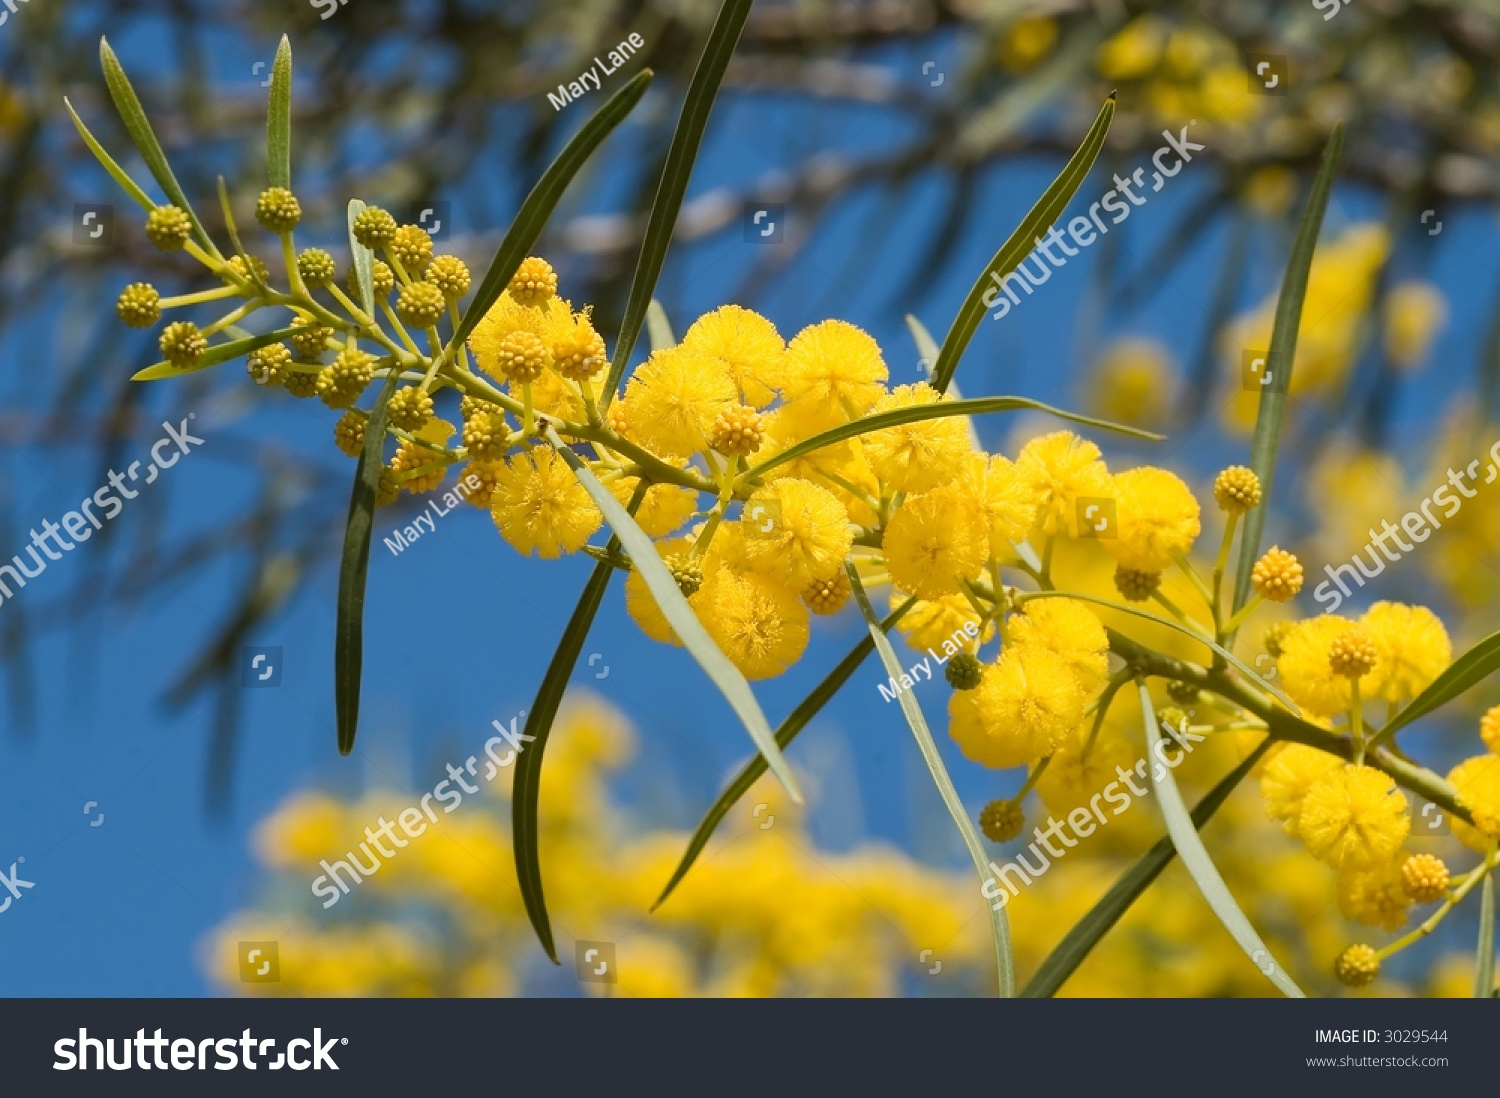 Flamboyant flowering tree big yellow popcorn stock photo safe to flamboyant flowering tree with big yellow popcorn like flowers galilee israel mightylinksfo